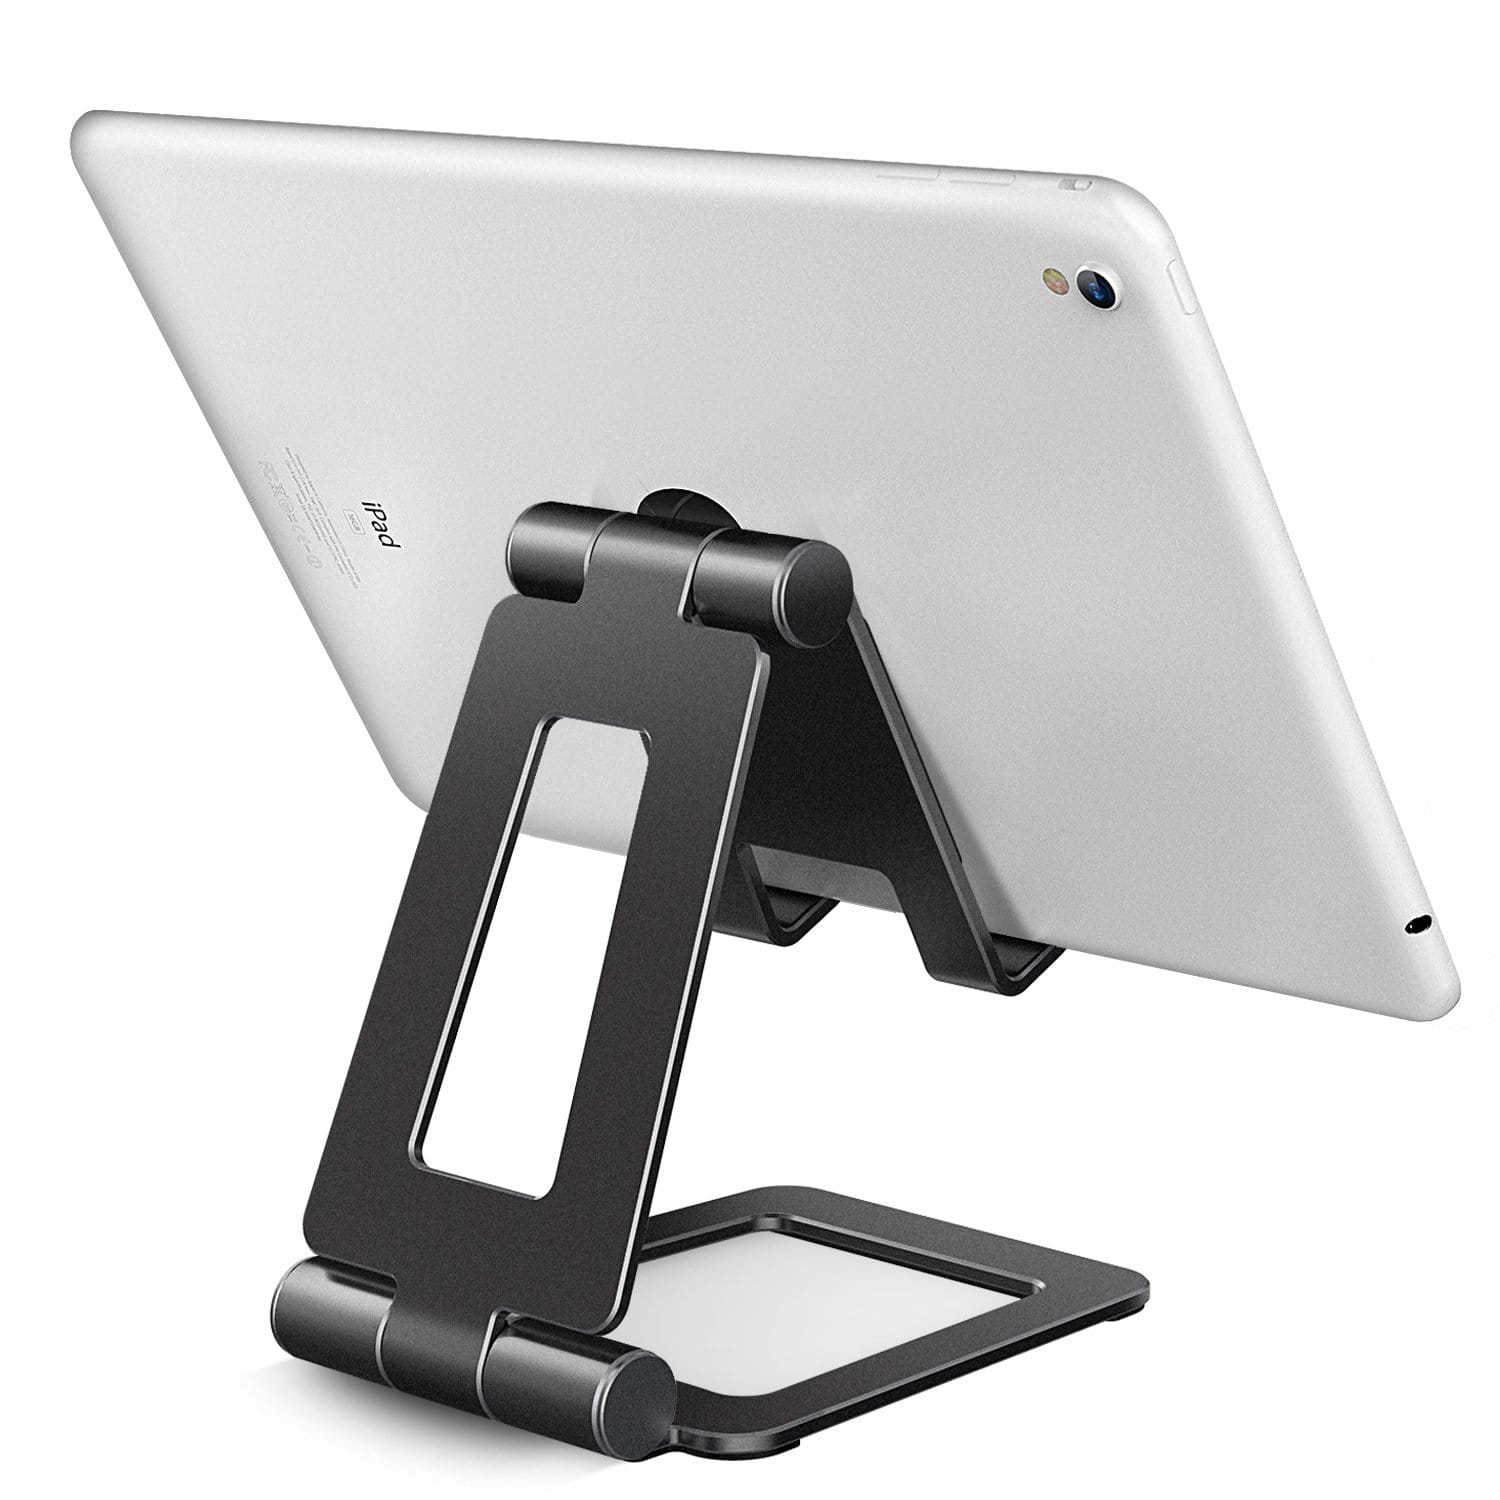 Adjustable and Dual Metal Fordable (270 degree) Stand / Holder for Tablet, Phone(4''-13'') various color from $7.99